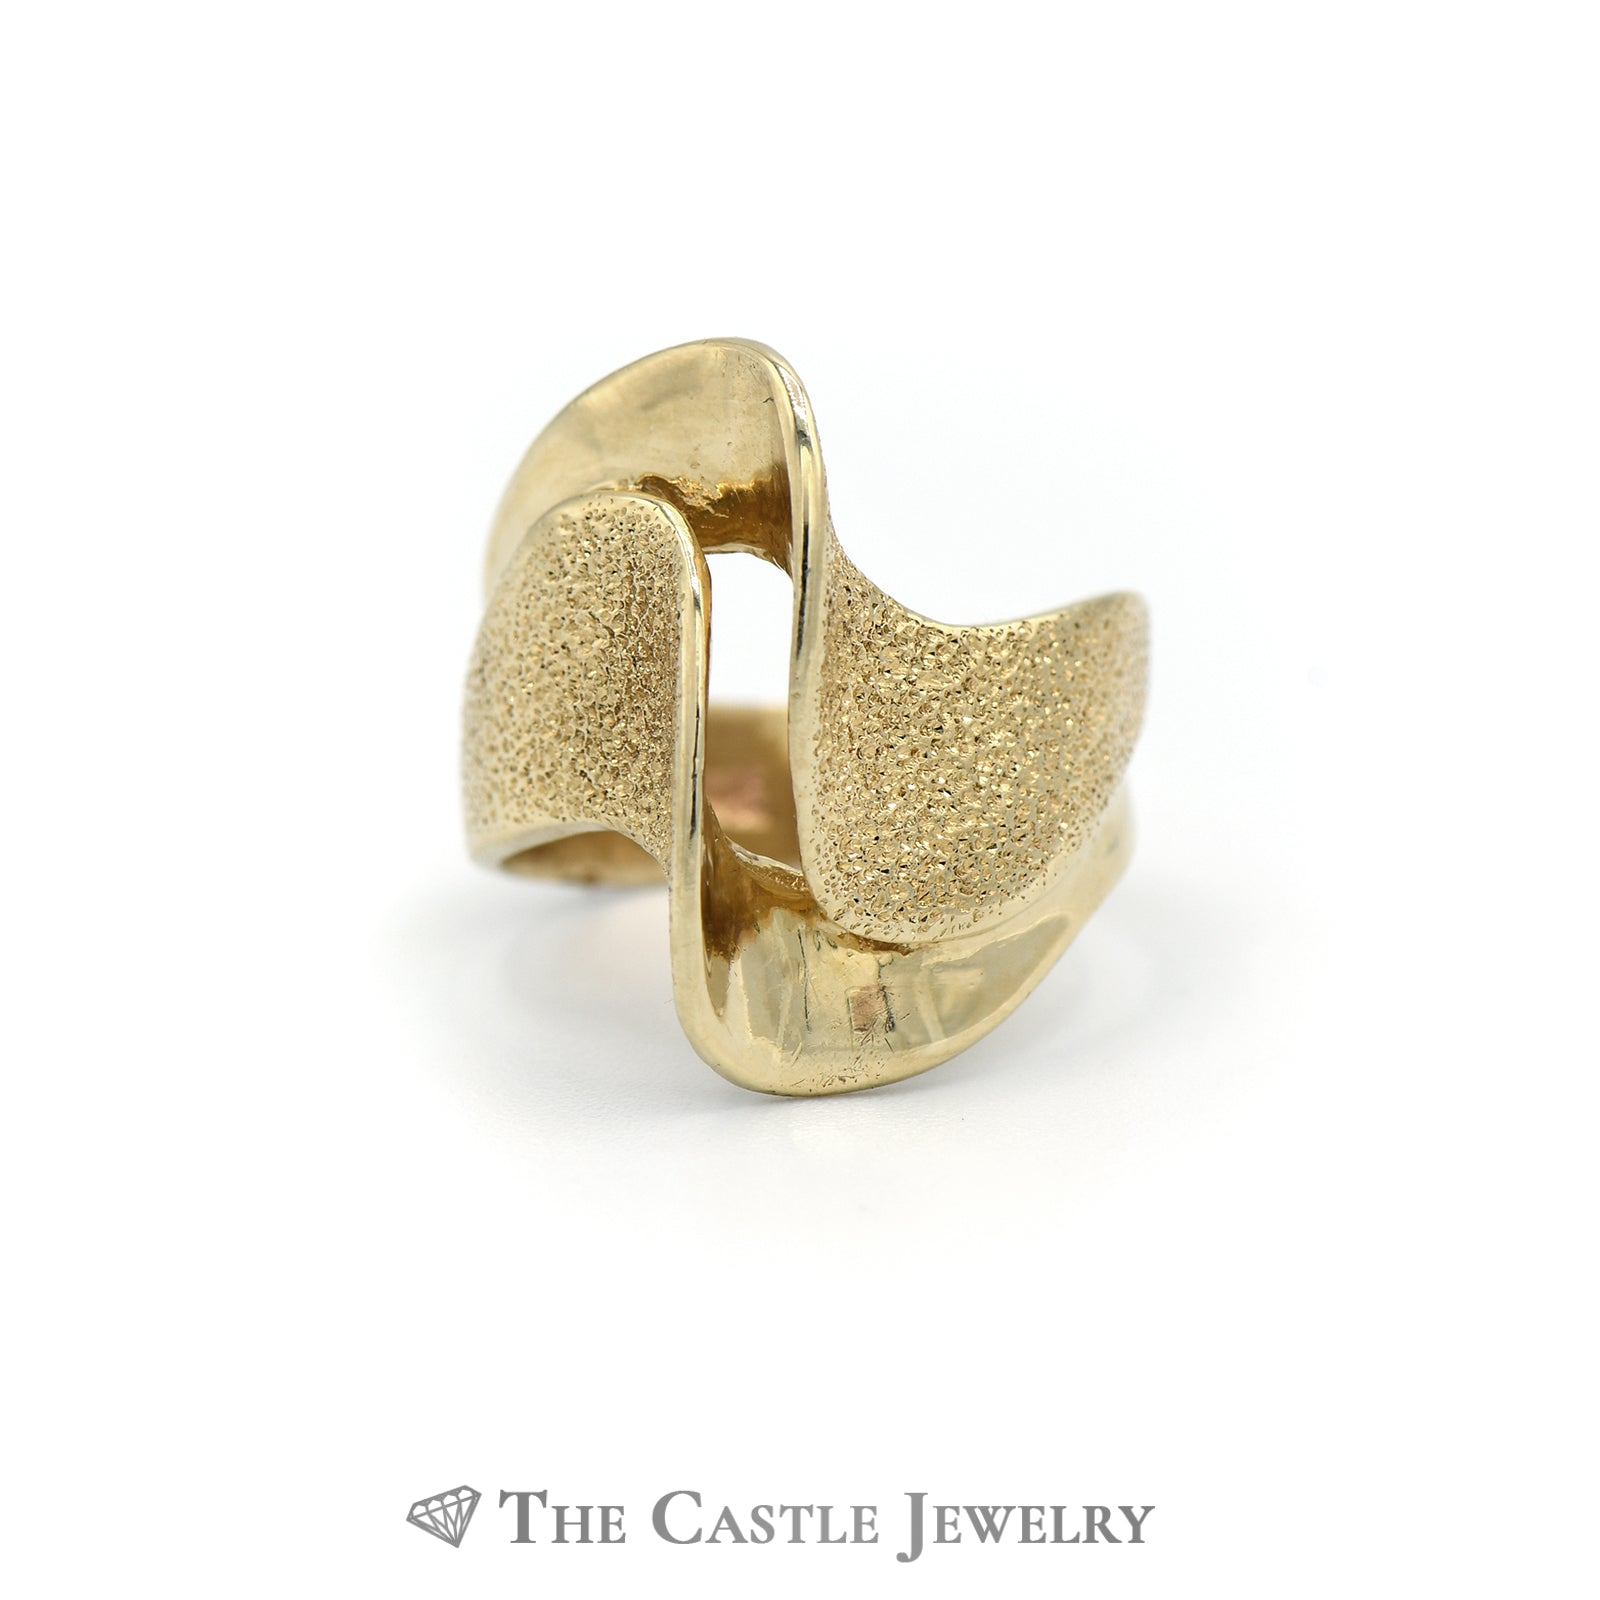 Lovely Split Wave Design Solid Gold Ring in 14K Yellow Gold